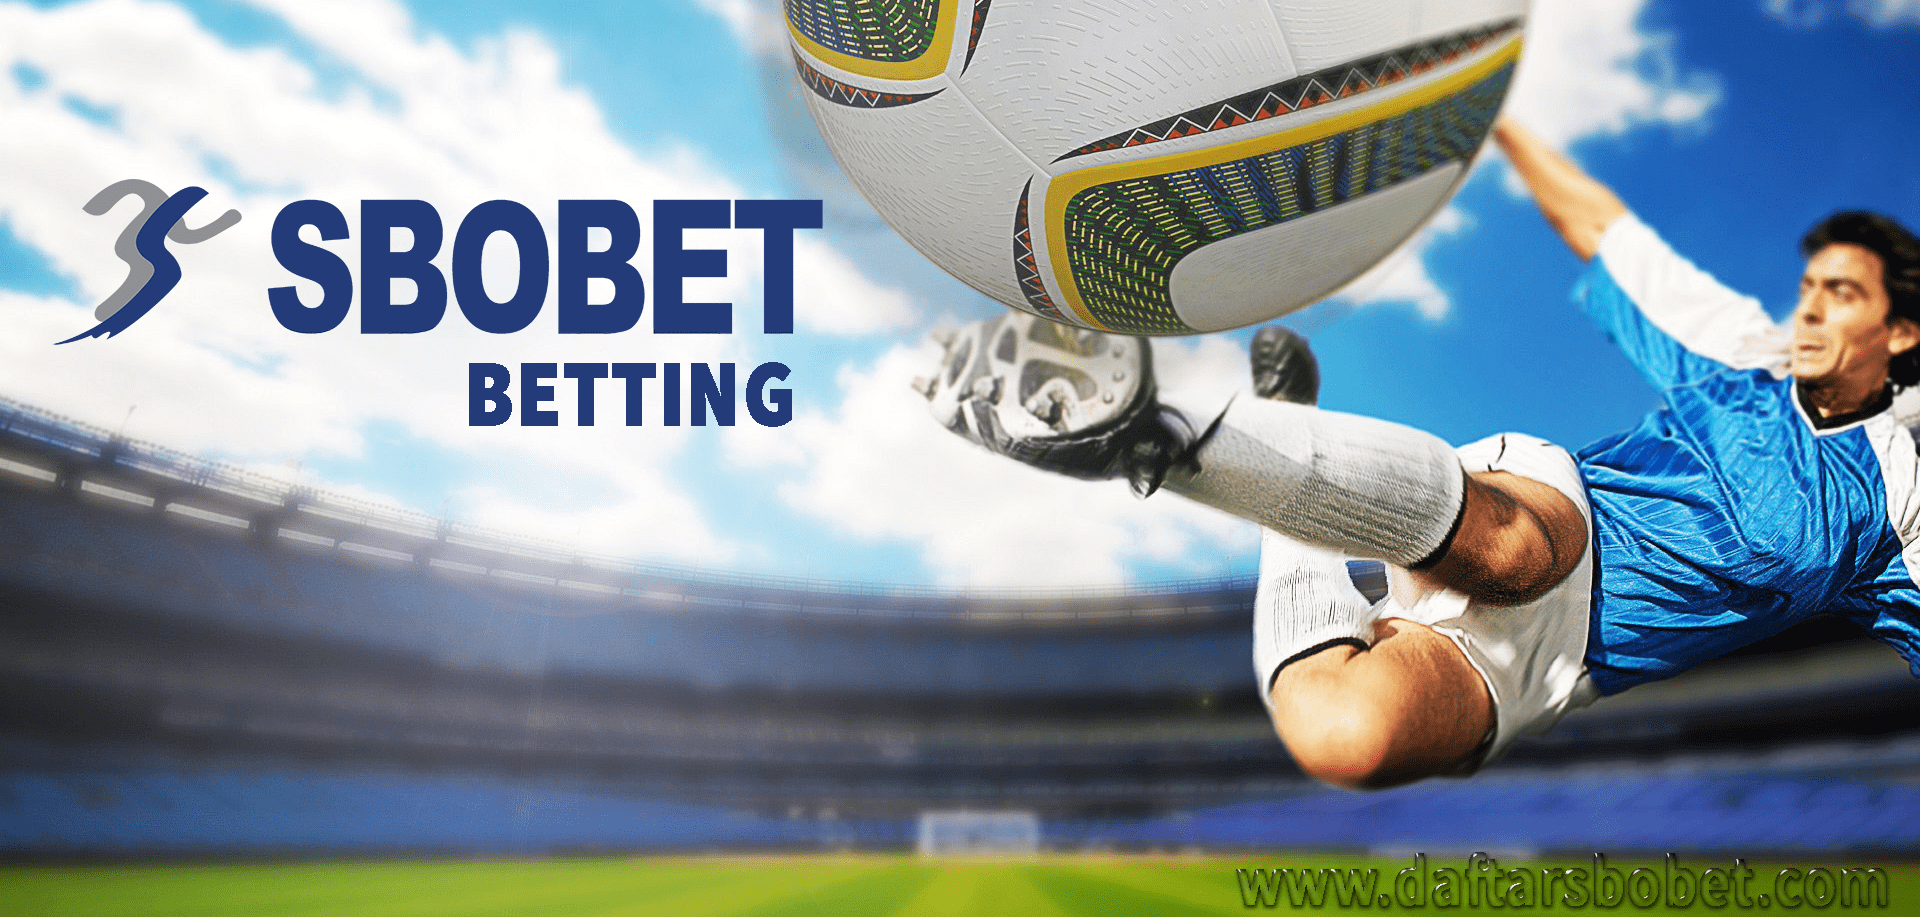 TRUSTED AND SECURE NETWORK FOR ONLINE CASINO – SBOBET